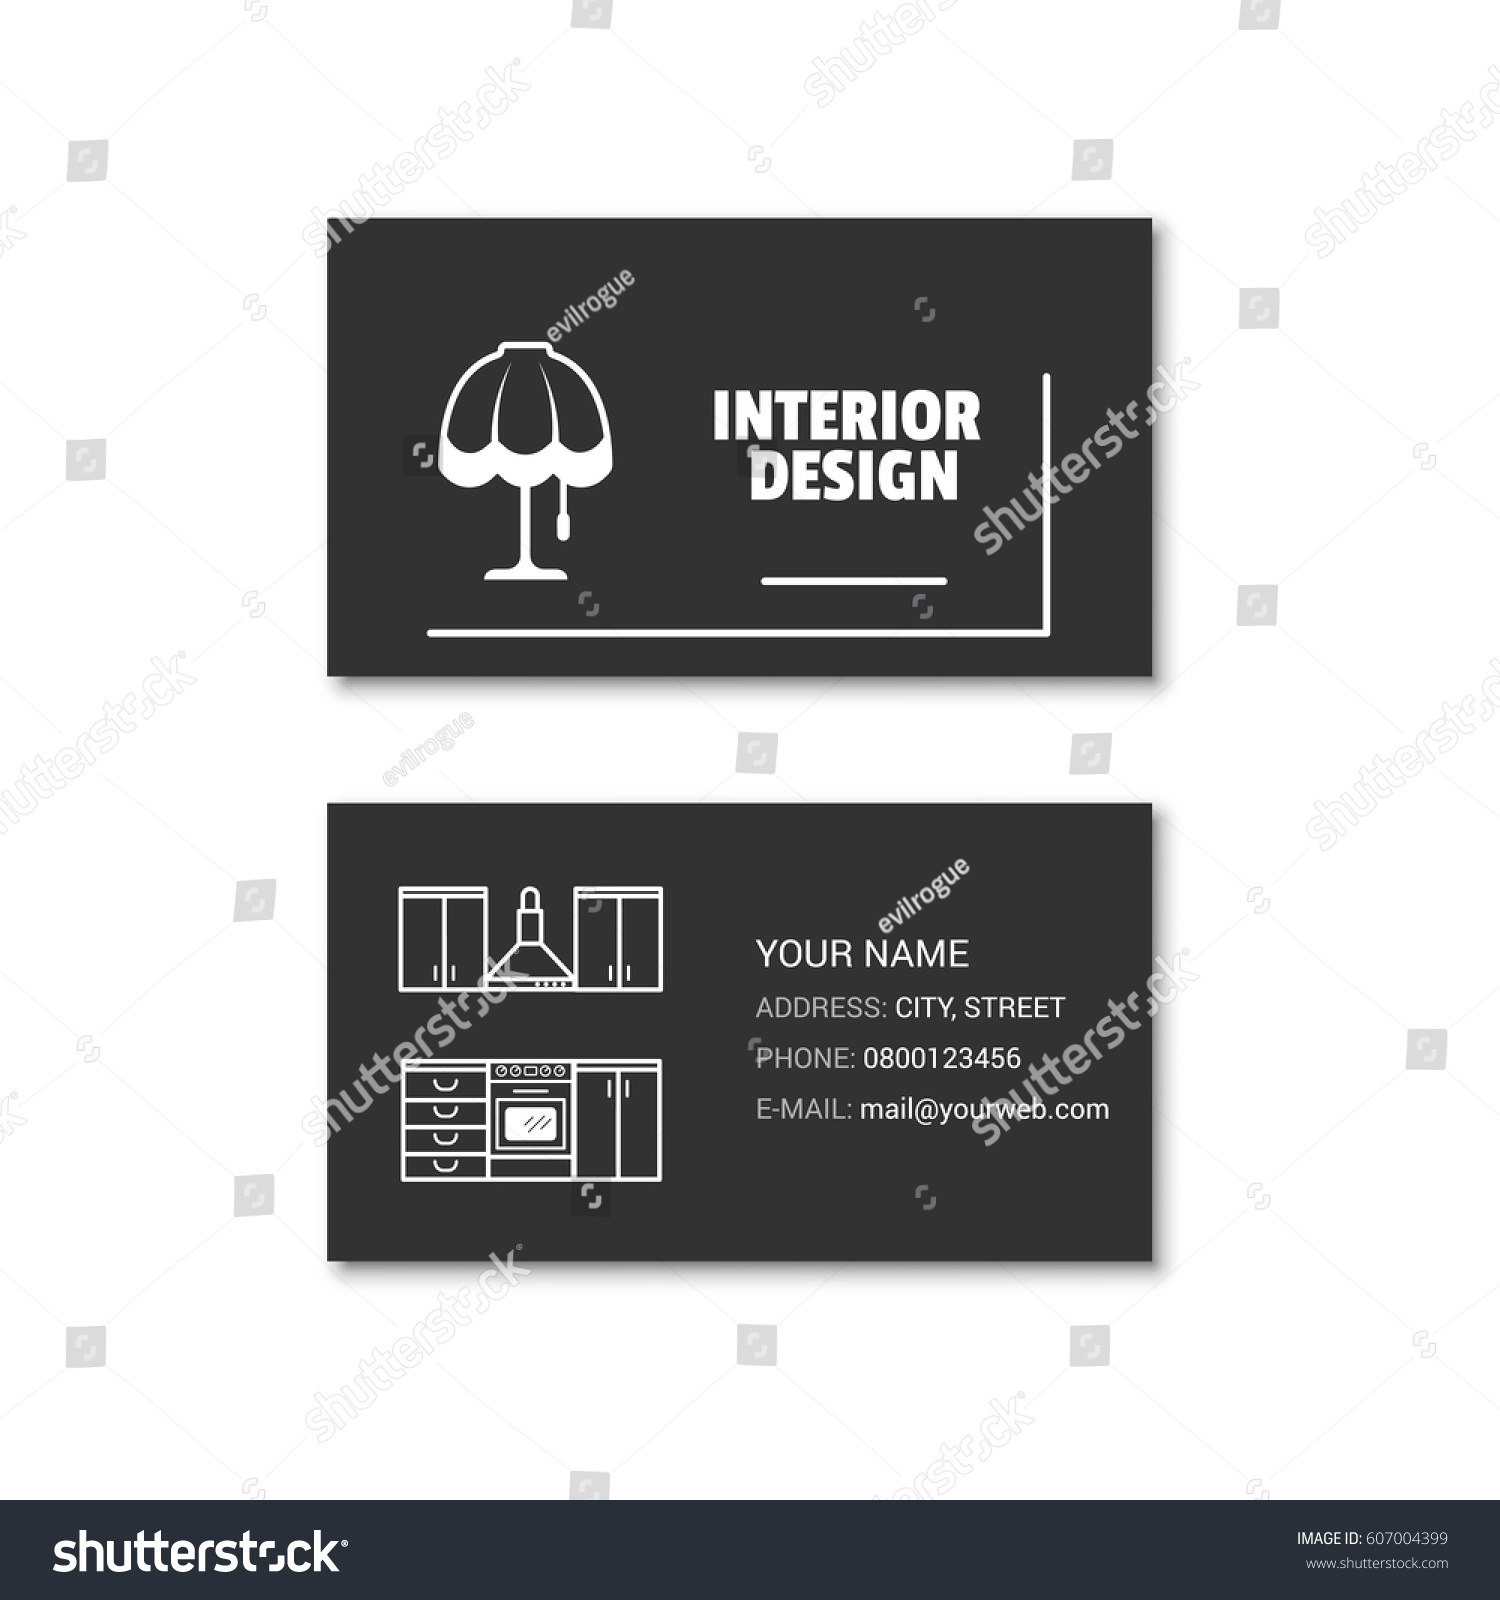 Interior design business card gallery free business cards simple business card interior designer vector stock vector simple business card of interior designer vector illustration magicingreecefo Images